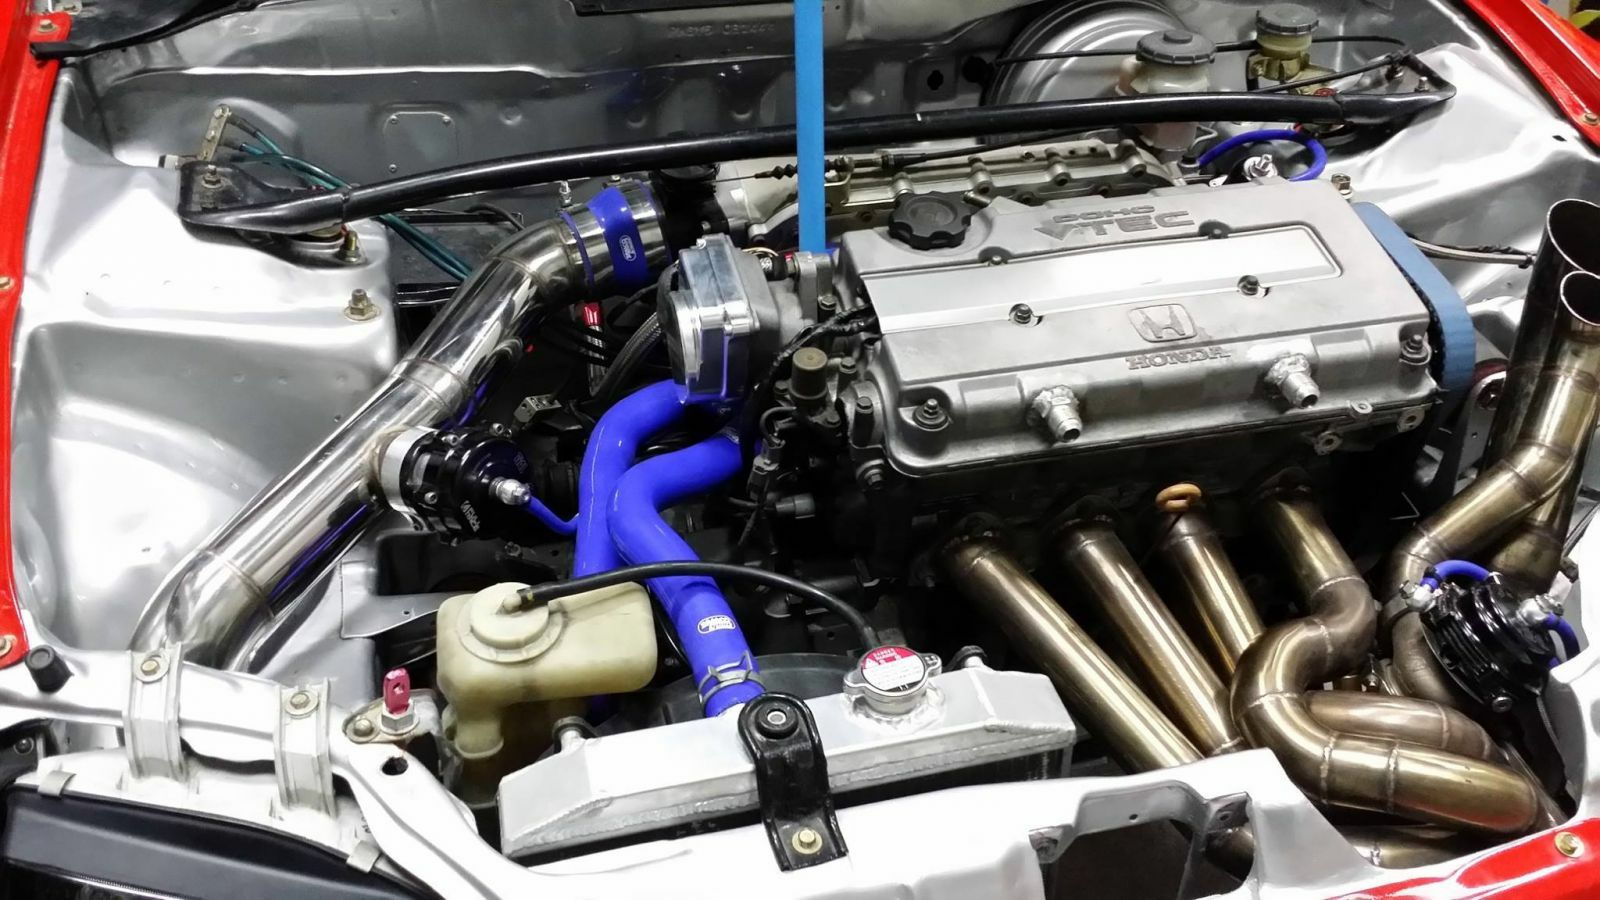 What Makes Honda Engines So Good?